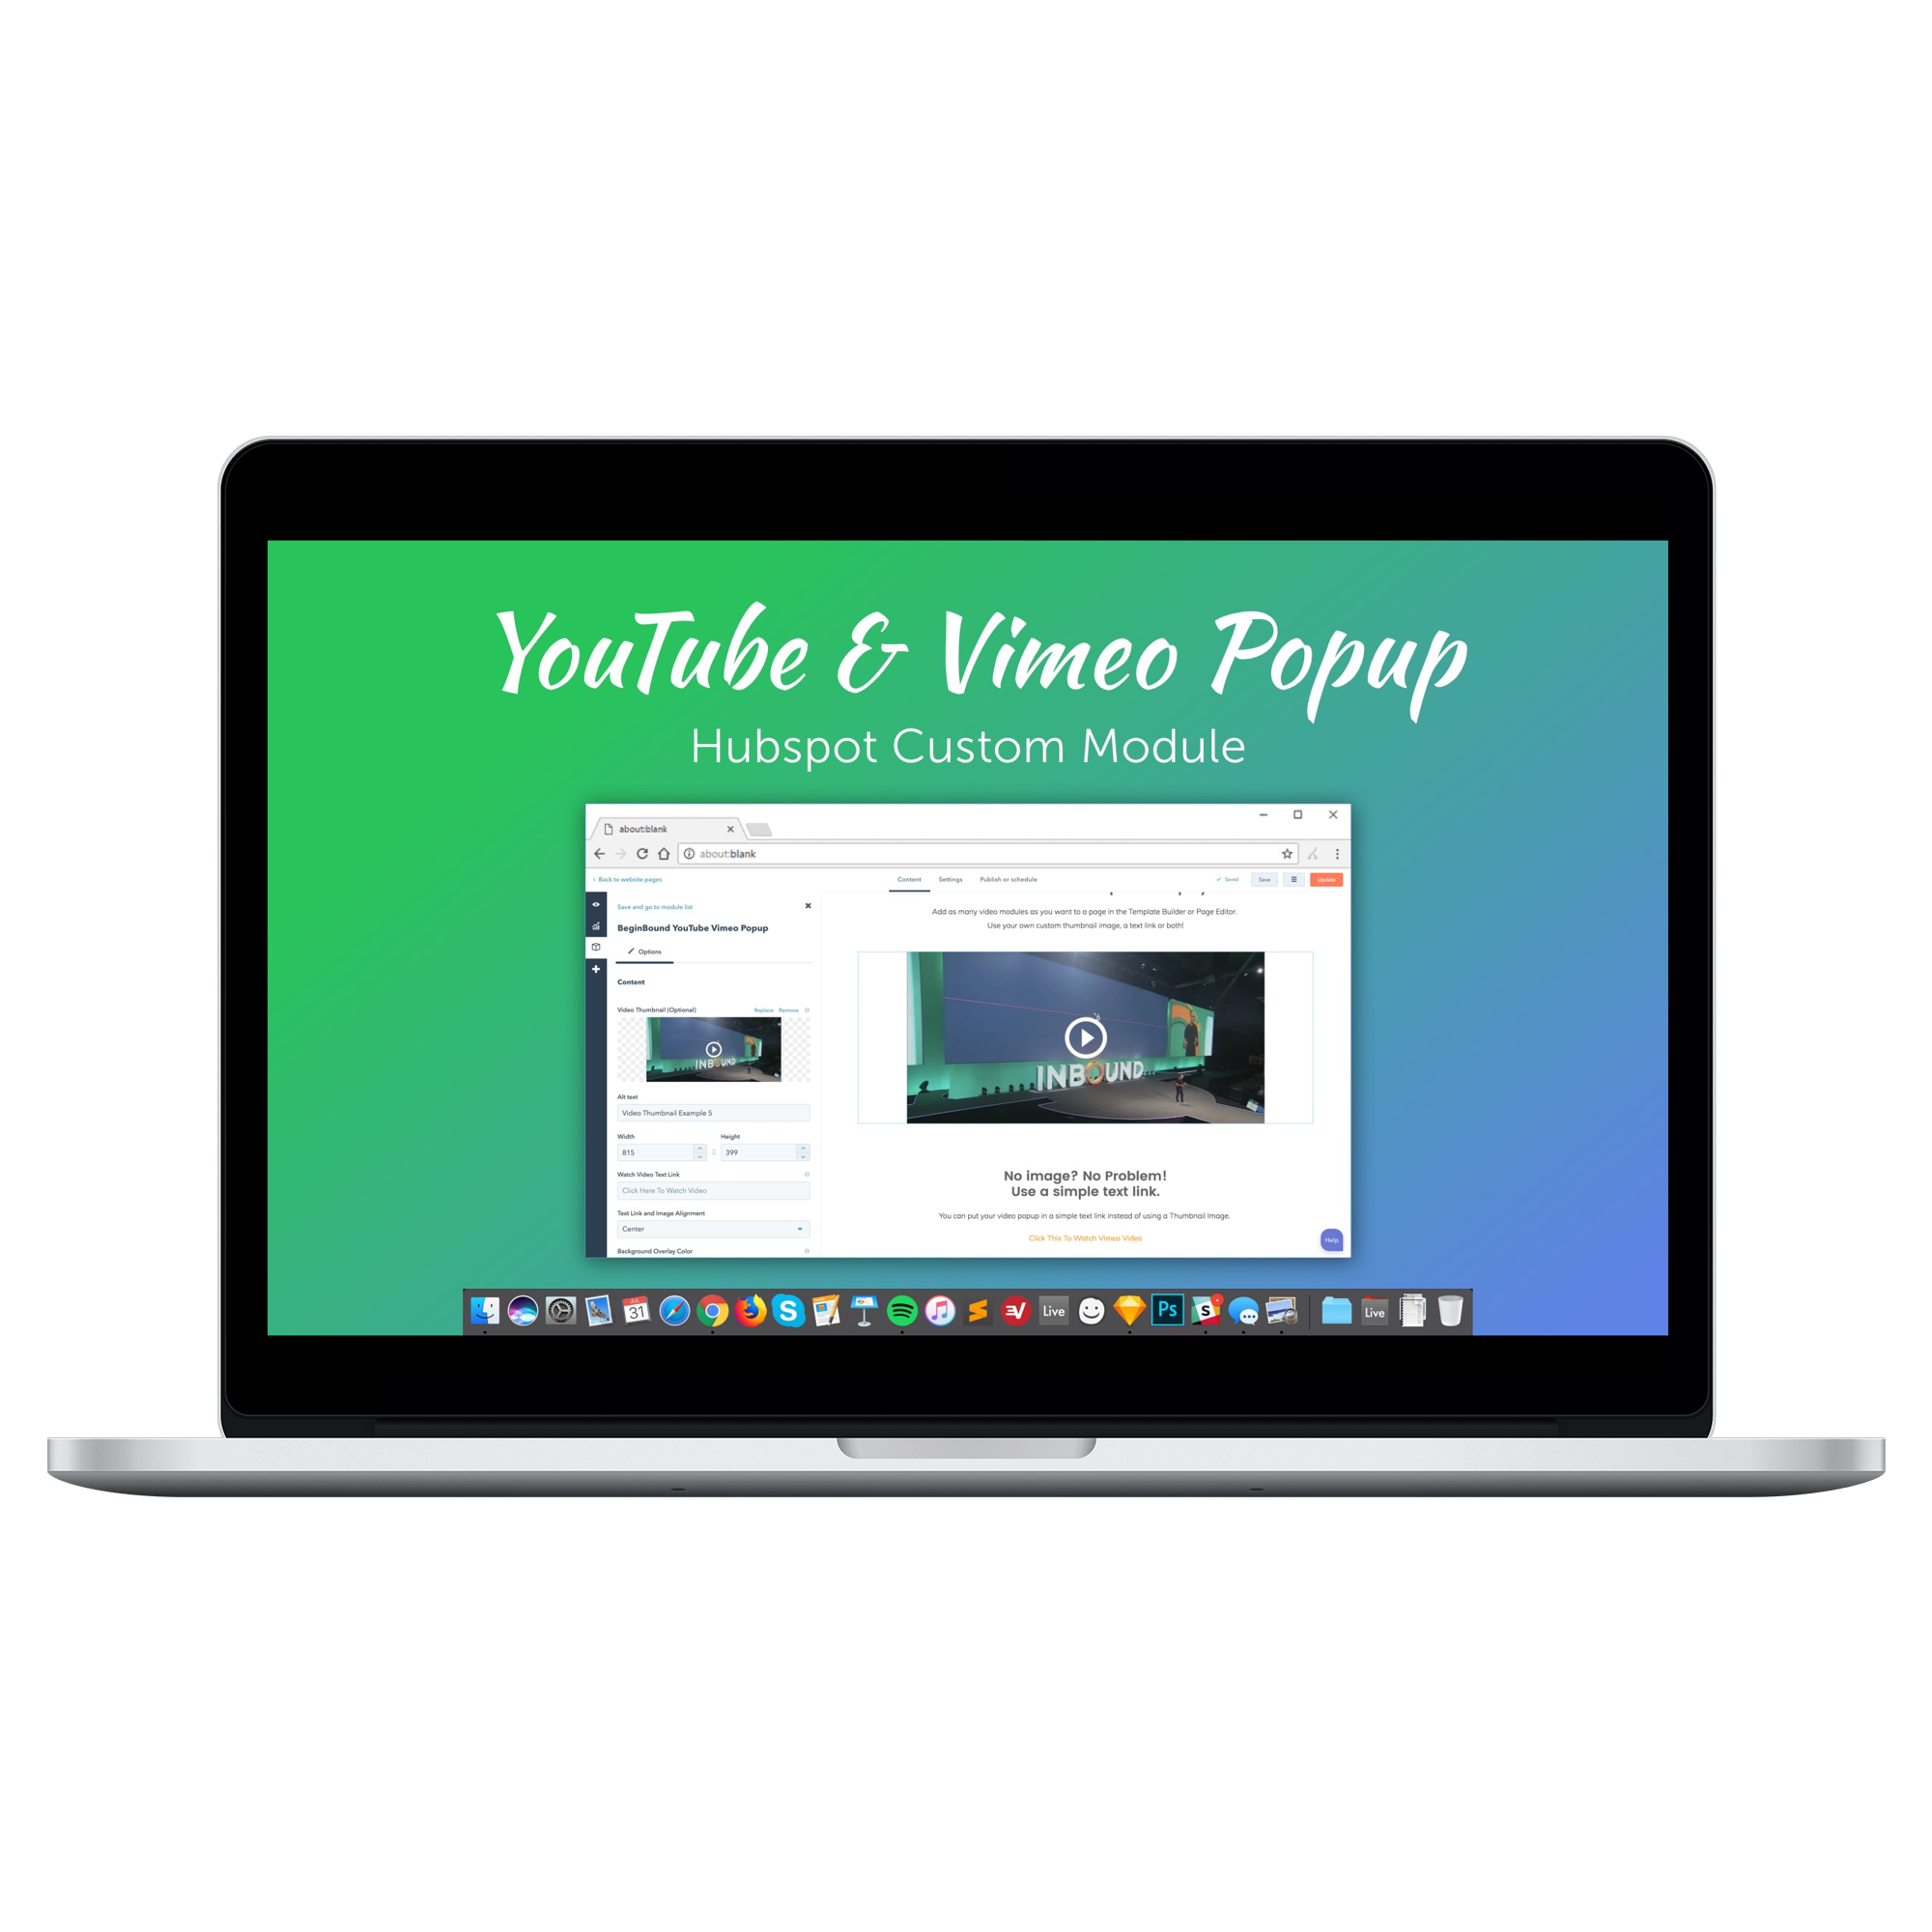 YOUTUBE VIMEO POPUP MODULE